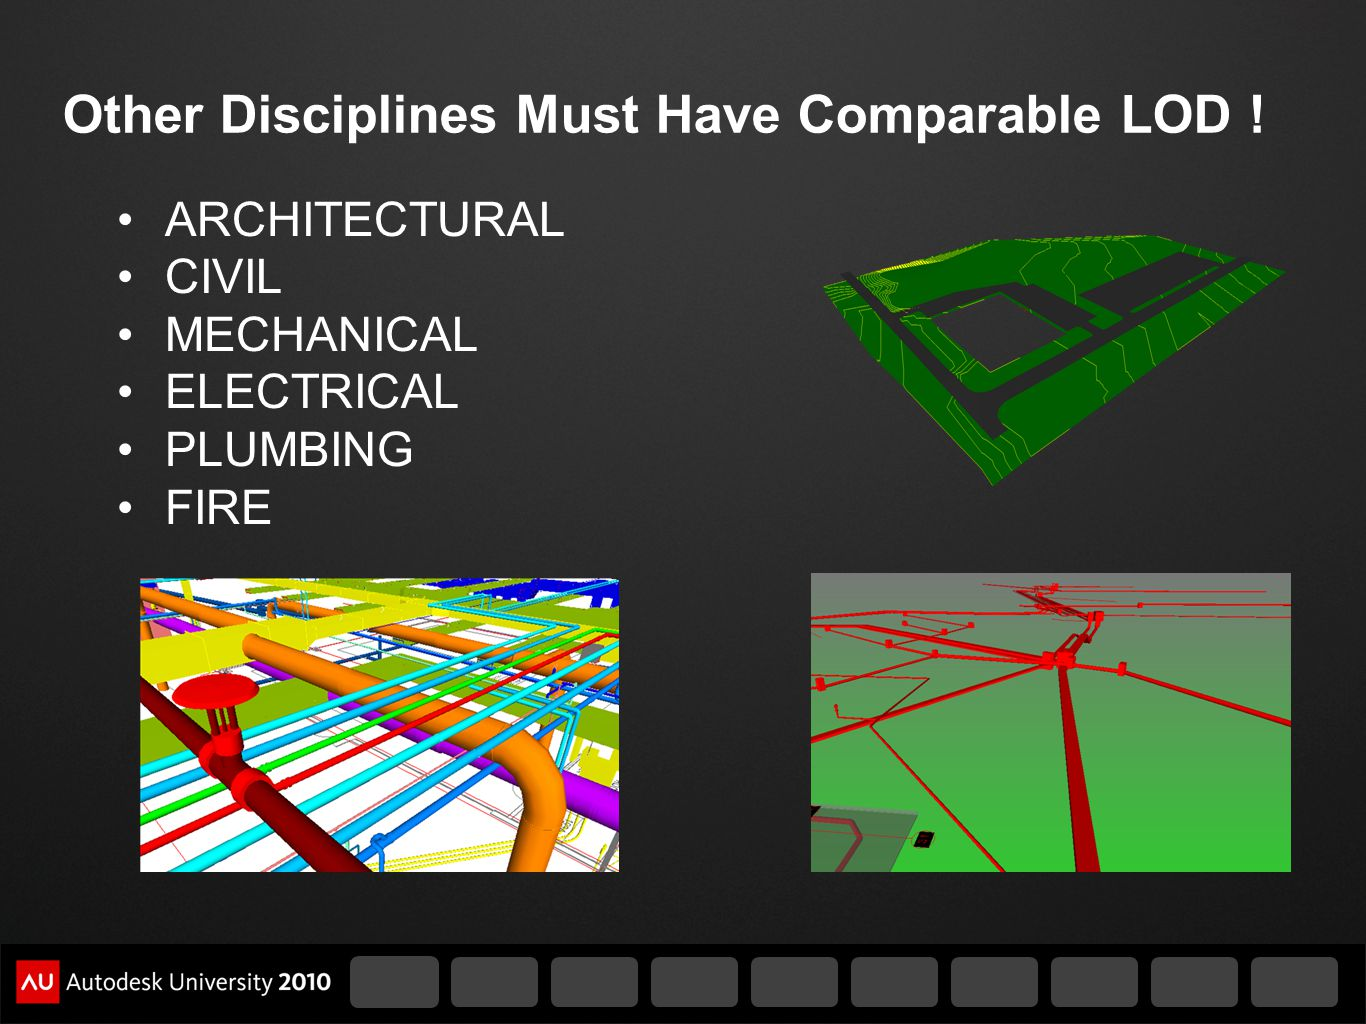 Other Disciplines Must Have Comparable LOD ! ARCHITECTURAL CIVIL MECHANICAL ELECTRICAL PLUMBING FIRE